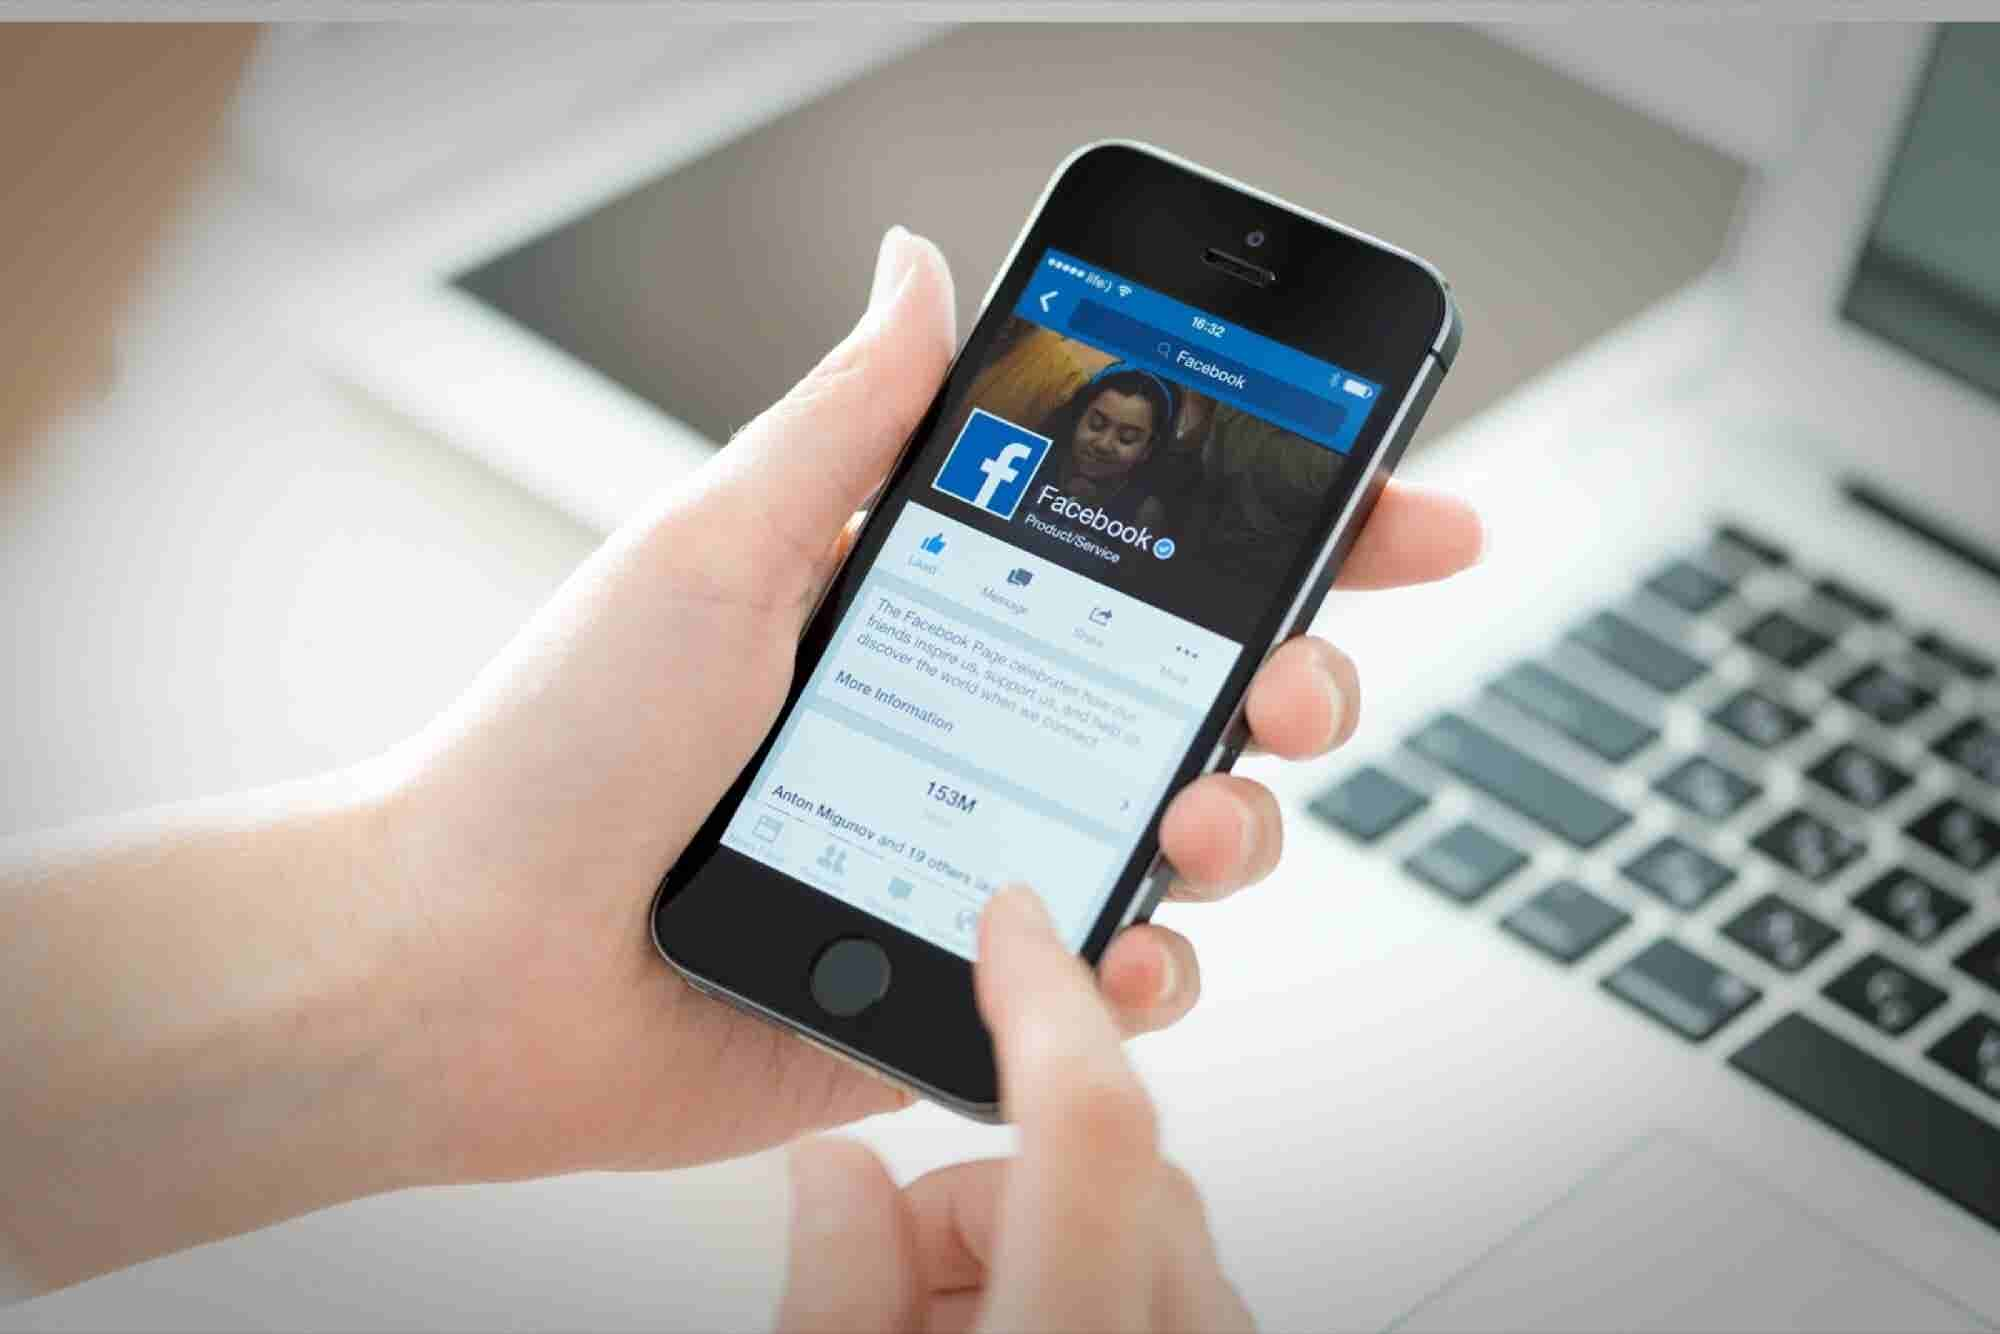 5 Steps You Should Take to Prepare for Facebook's 'All Video' Future